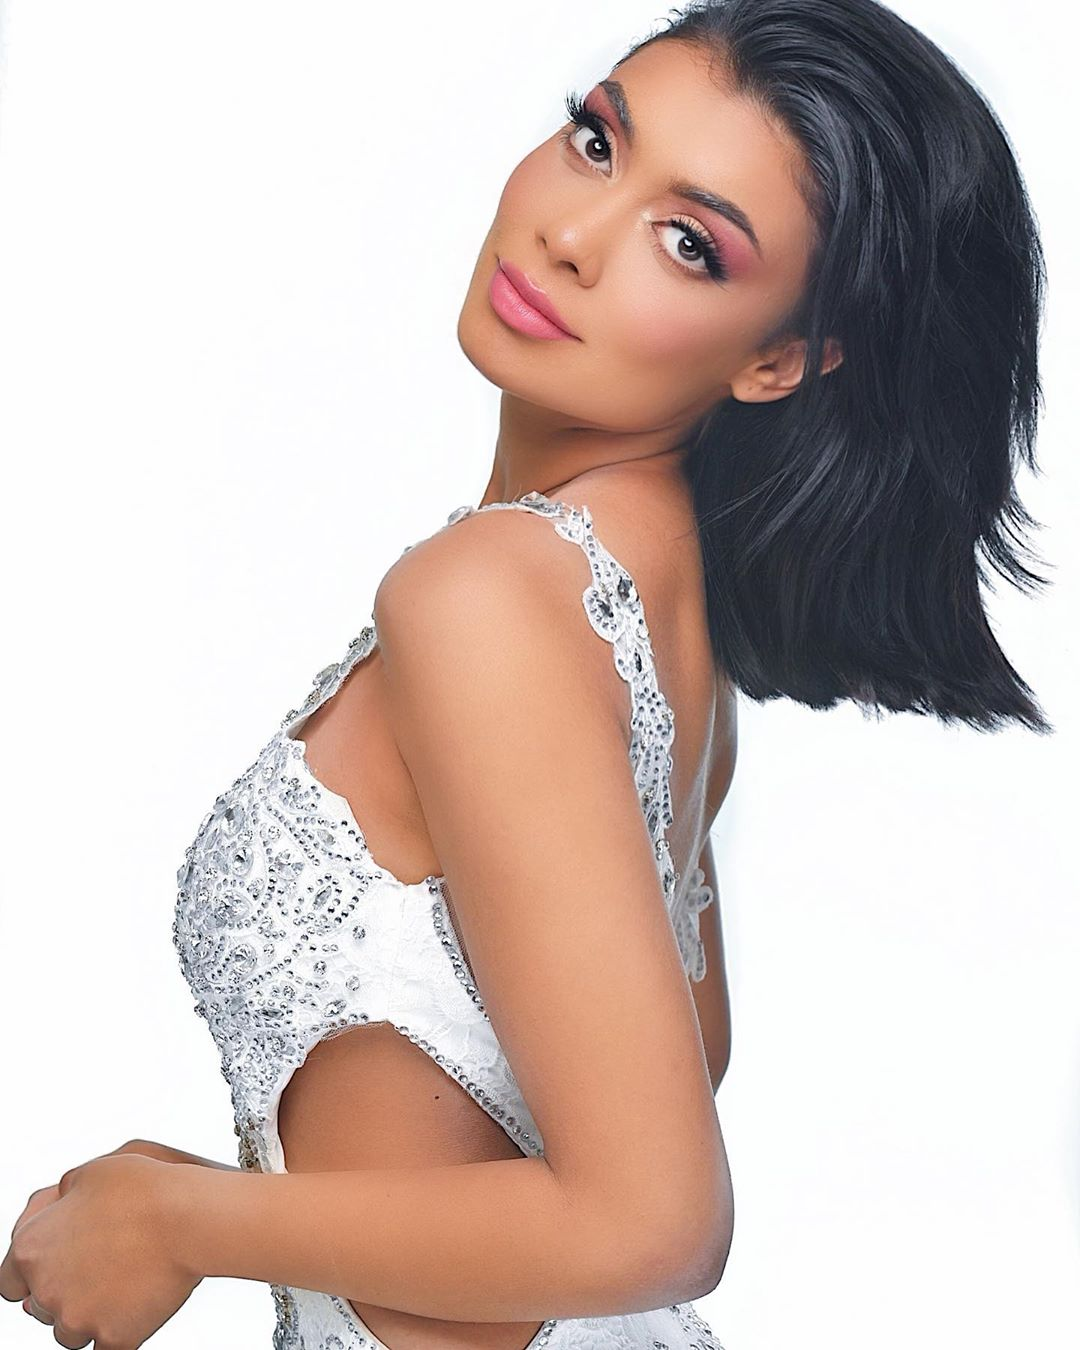 ghazal gill, miss international usa 2019. 71170210